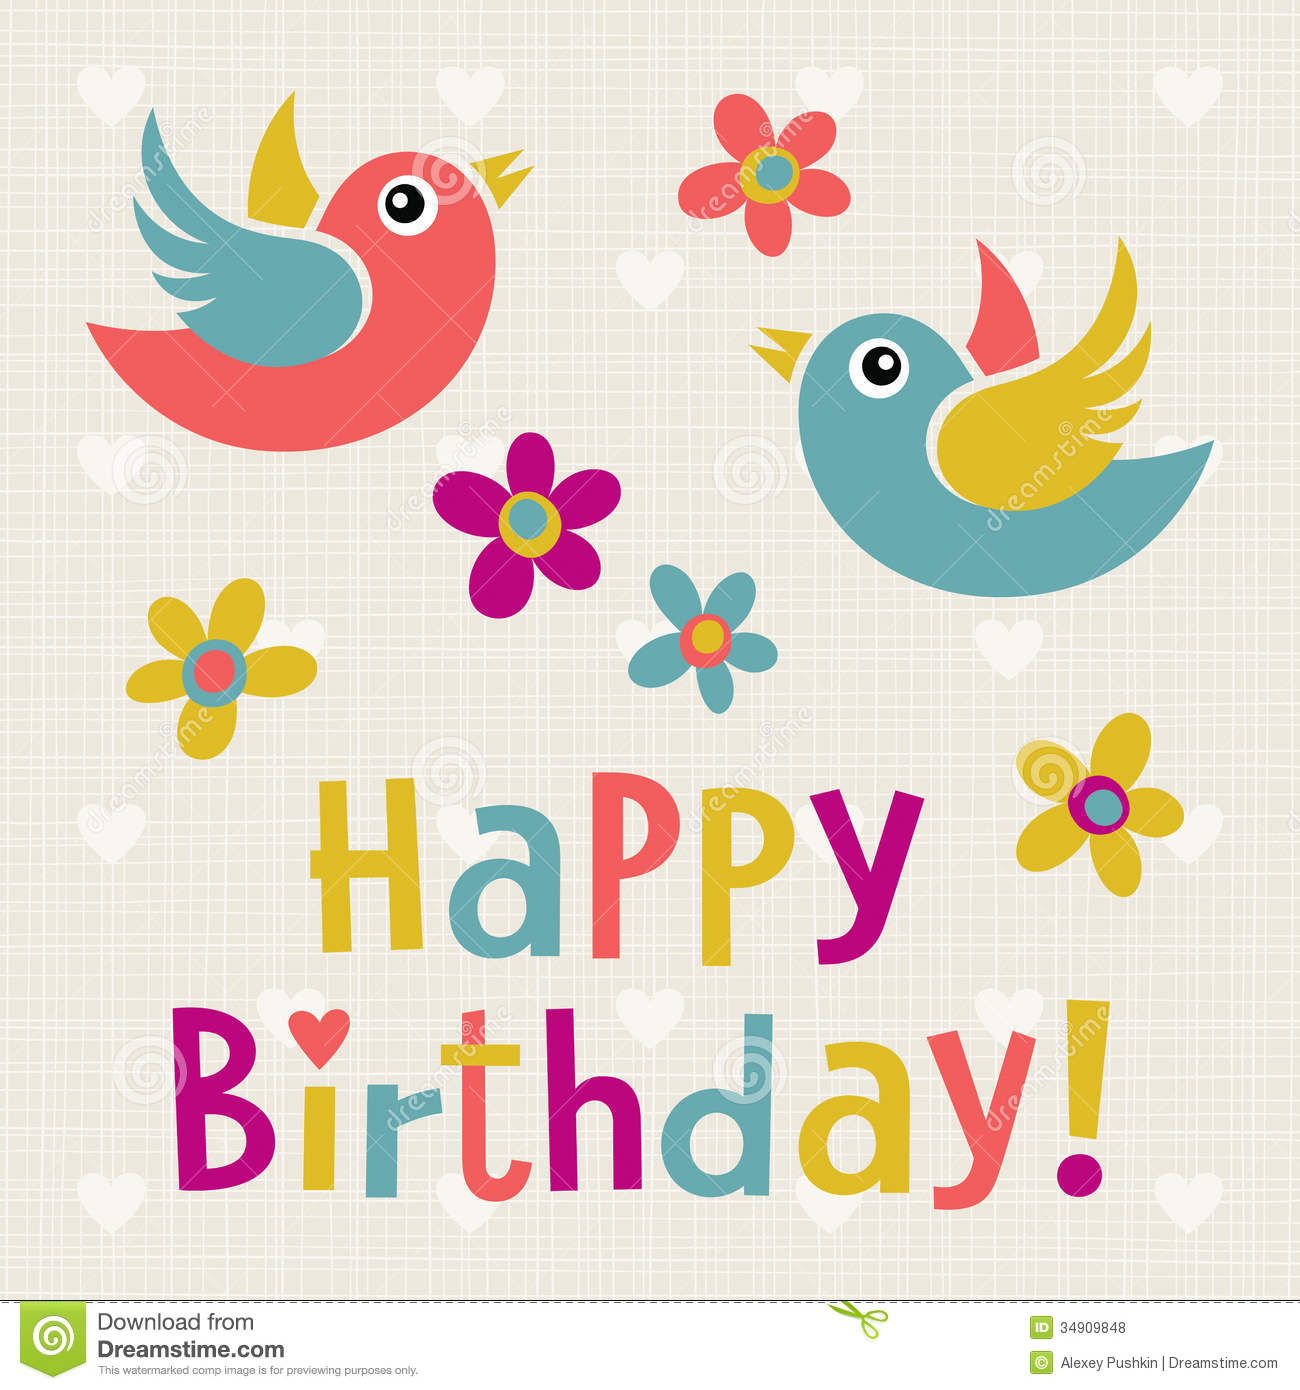 Happy Birthday Royalty Free Stock Photos - Image: 34909848